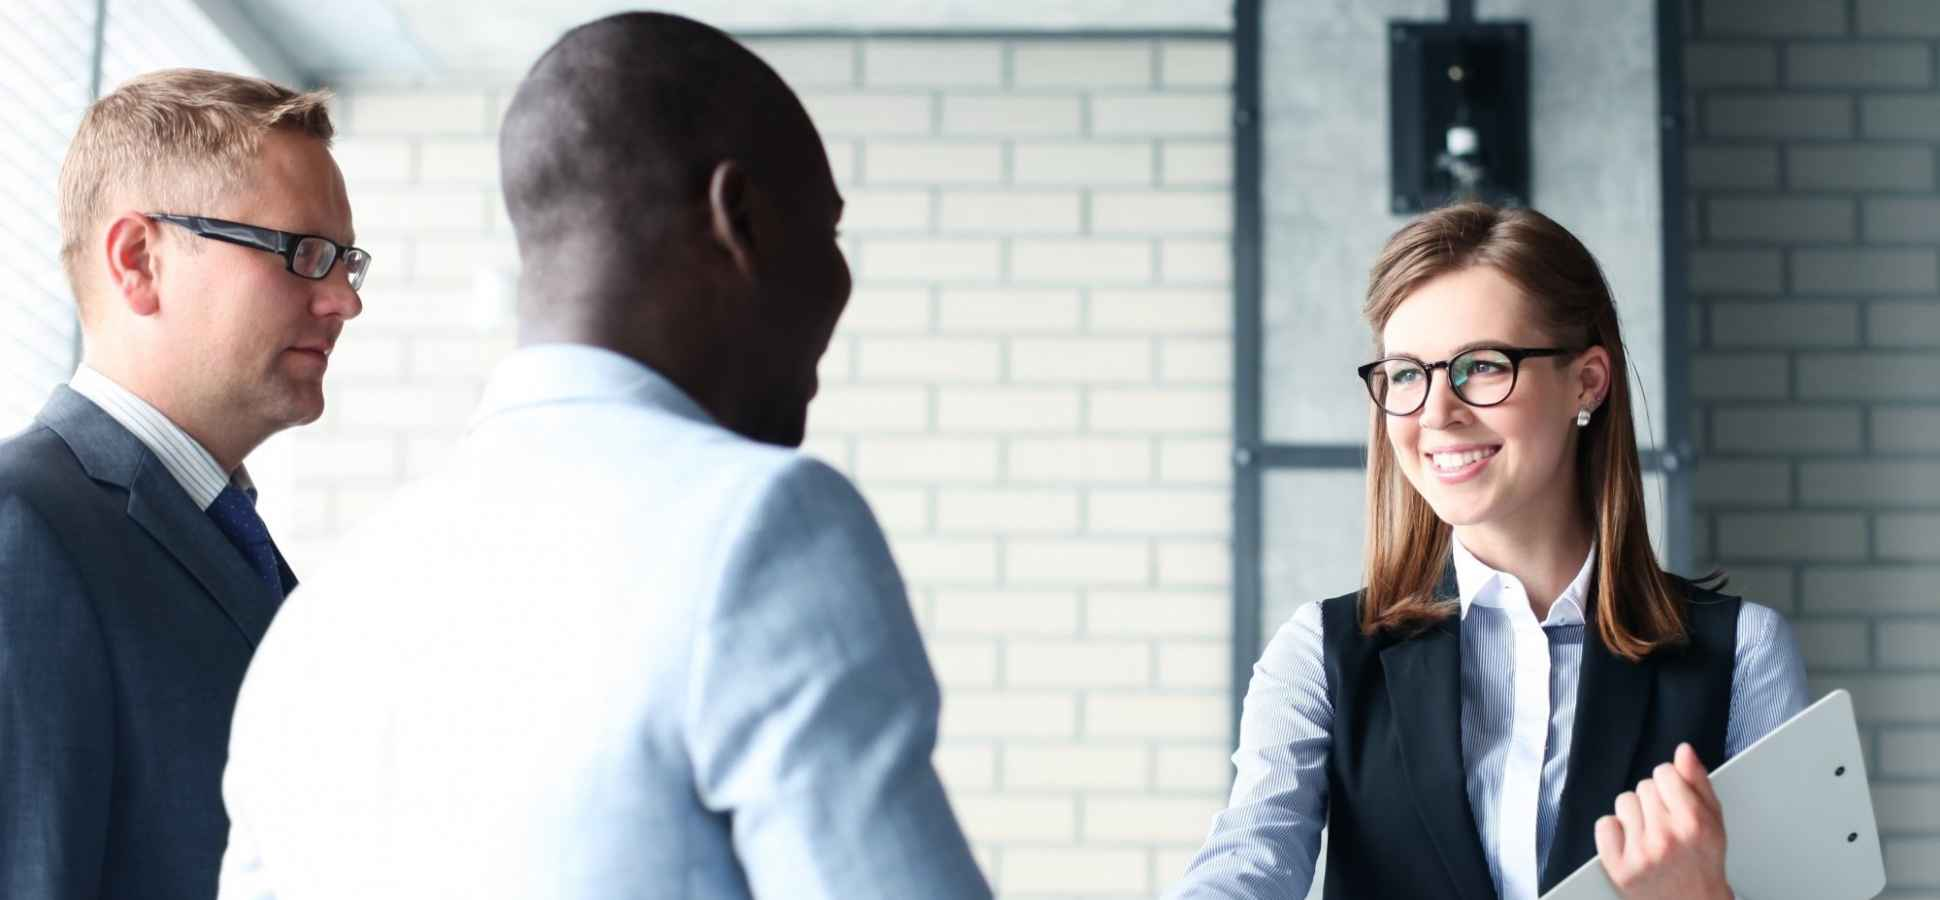 4 Necessary Steps to Land Your First Client